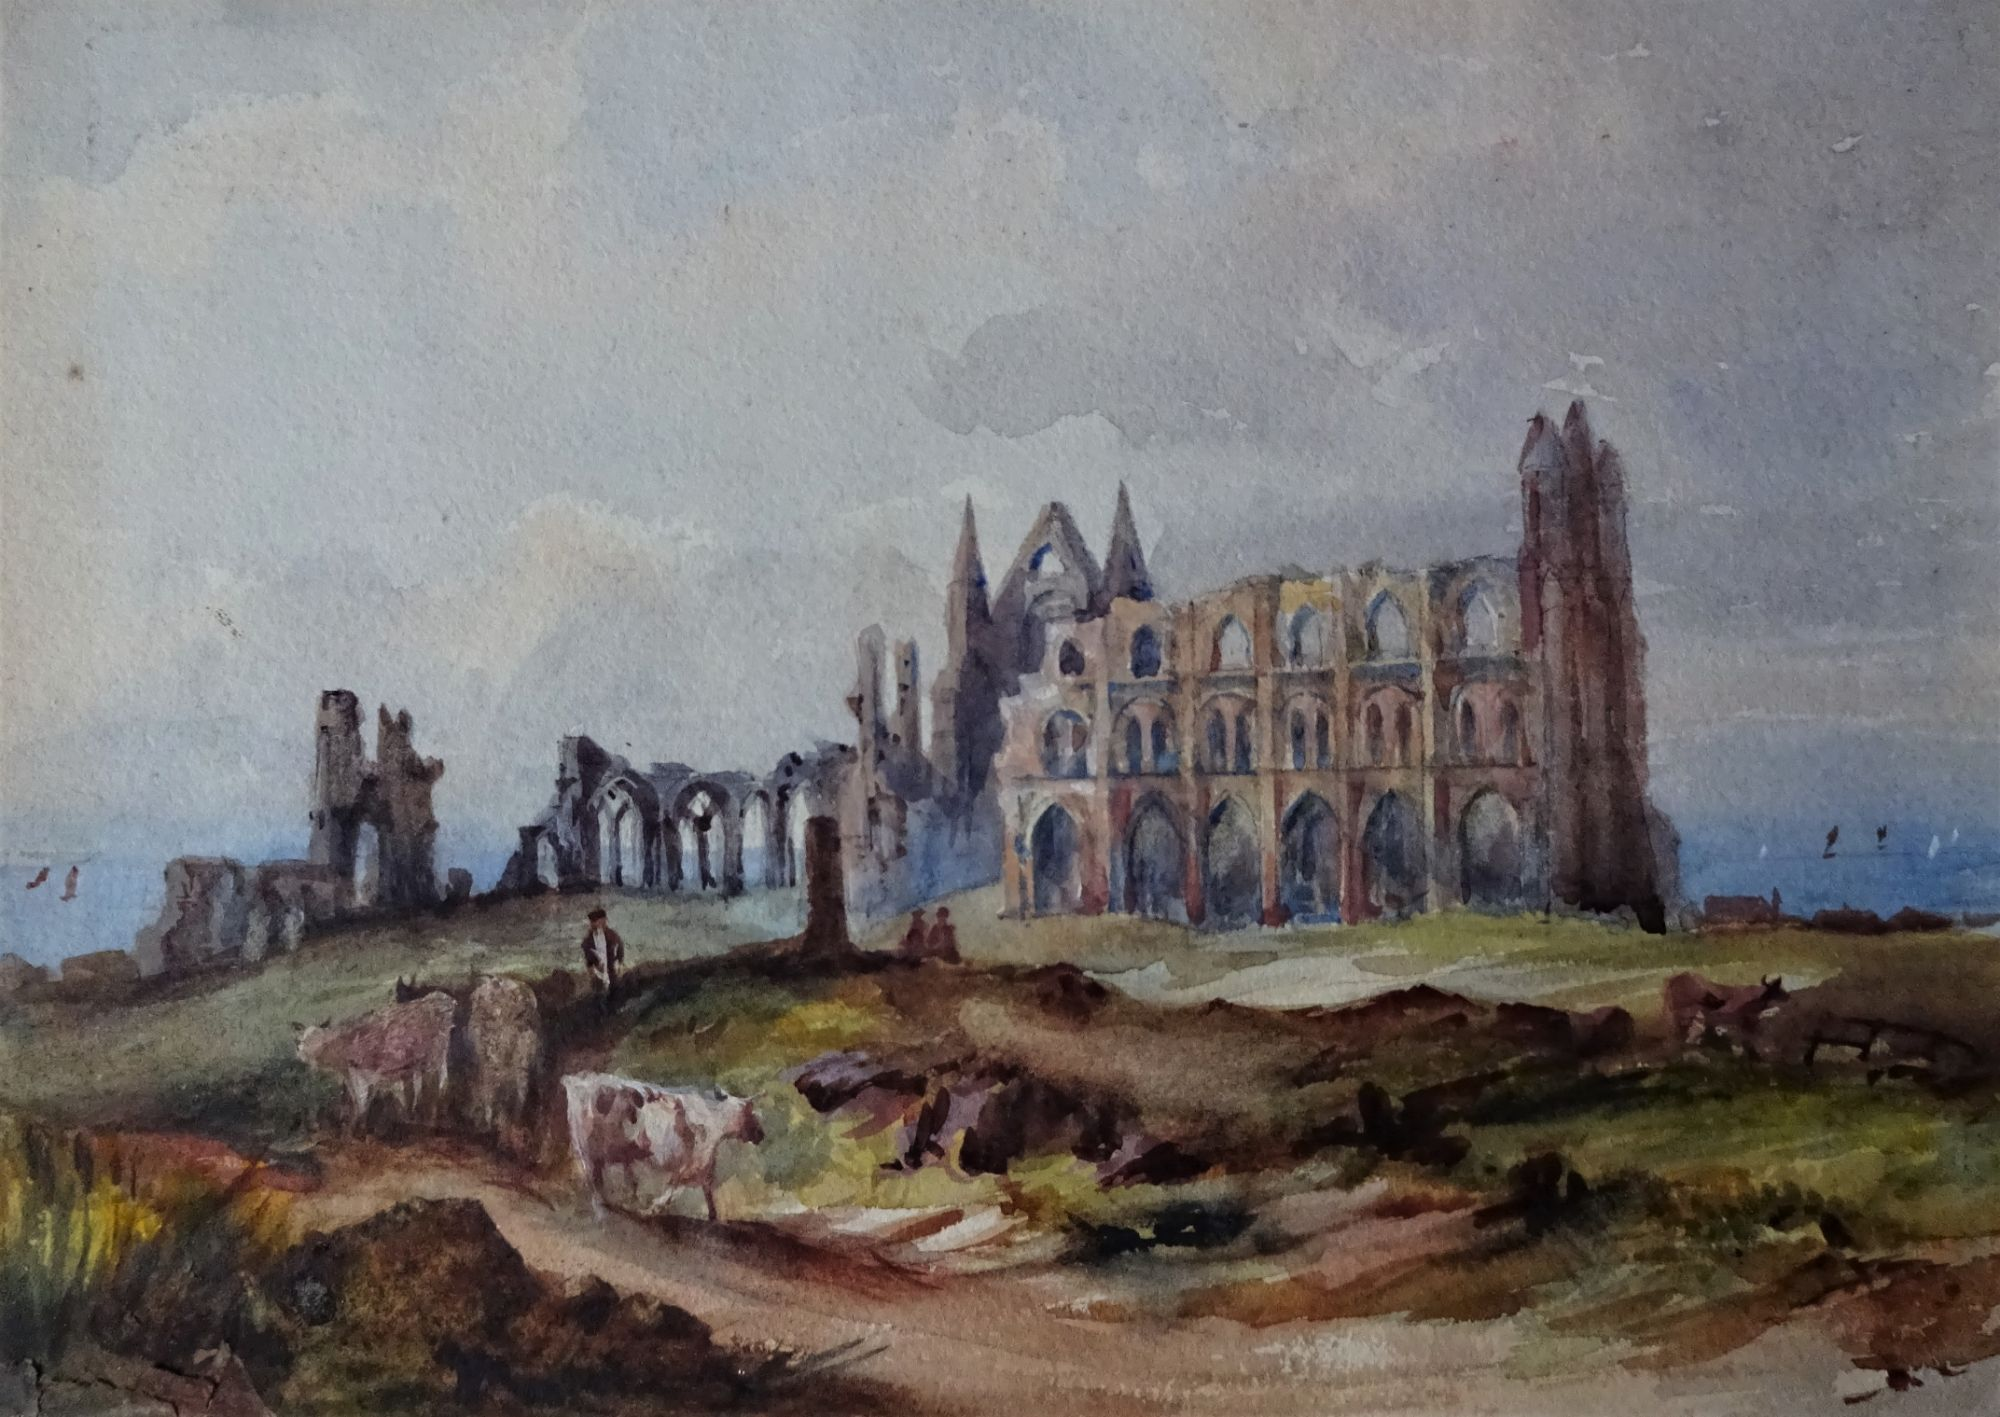 Whitby Abbey with Cattle,  Mary Weatherill c1880.